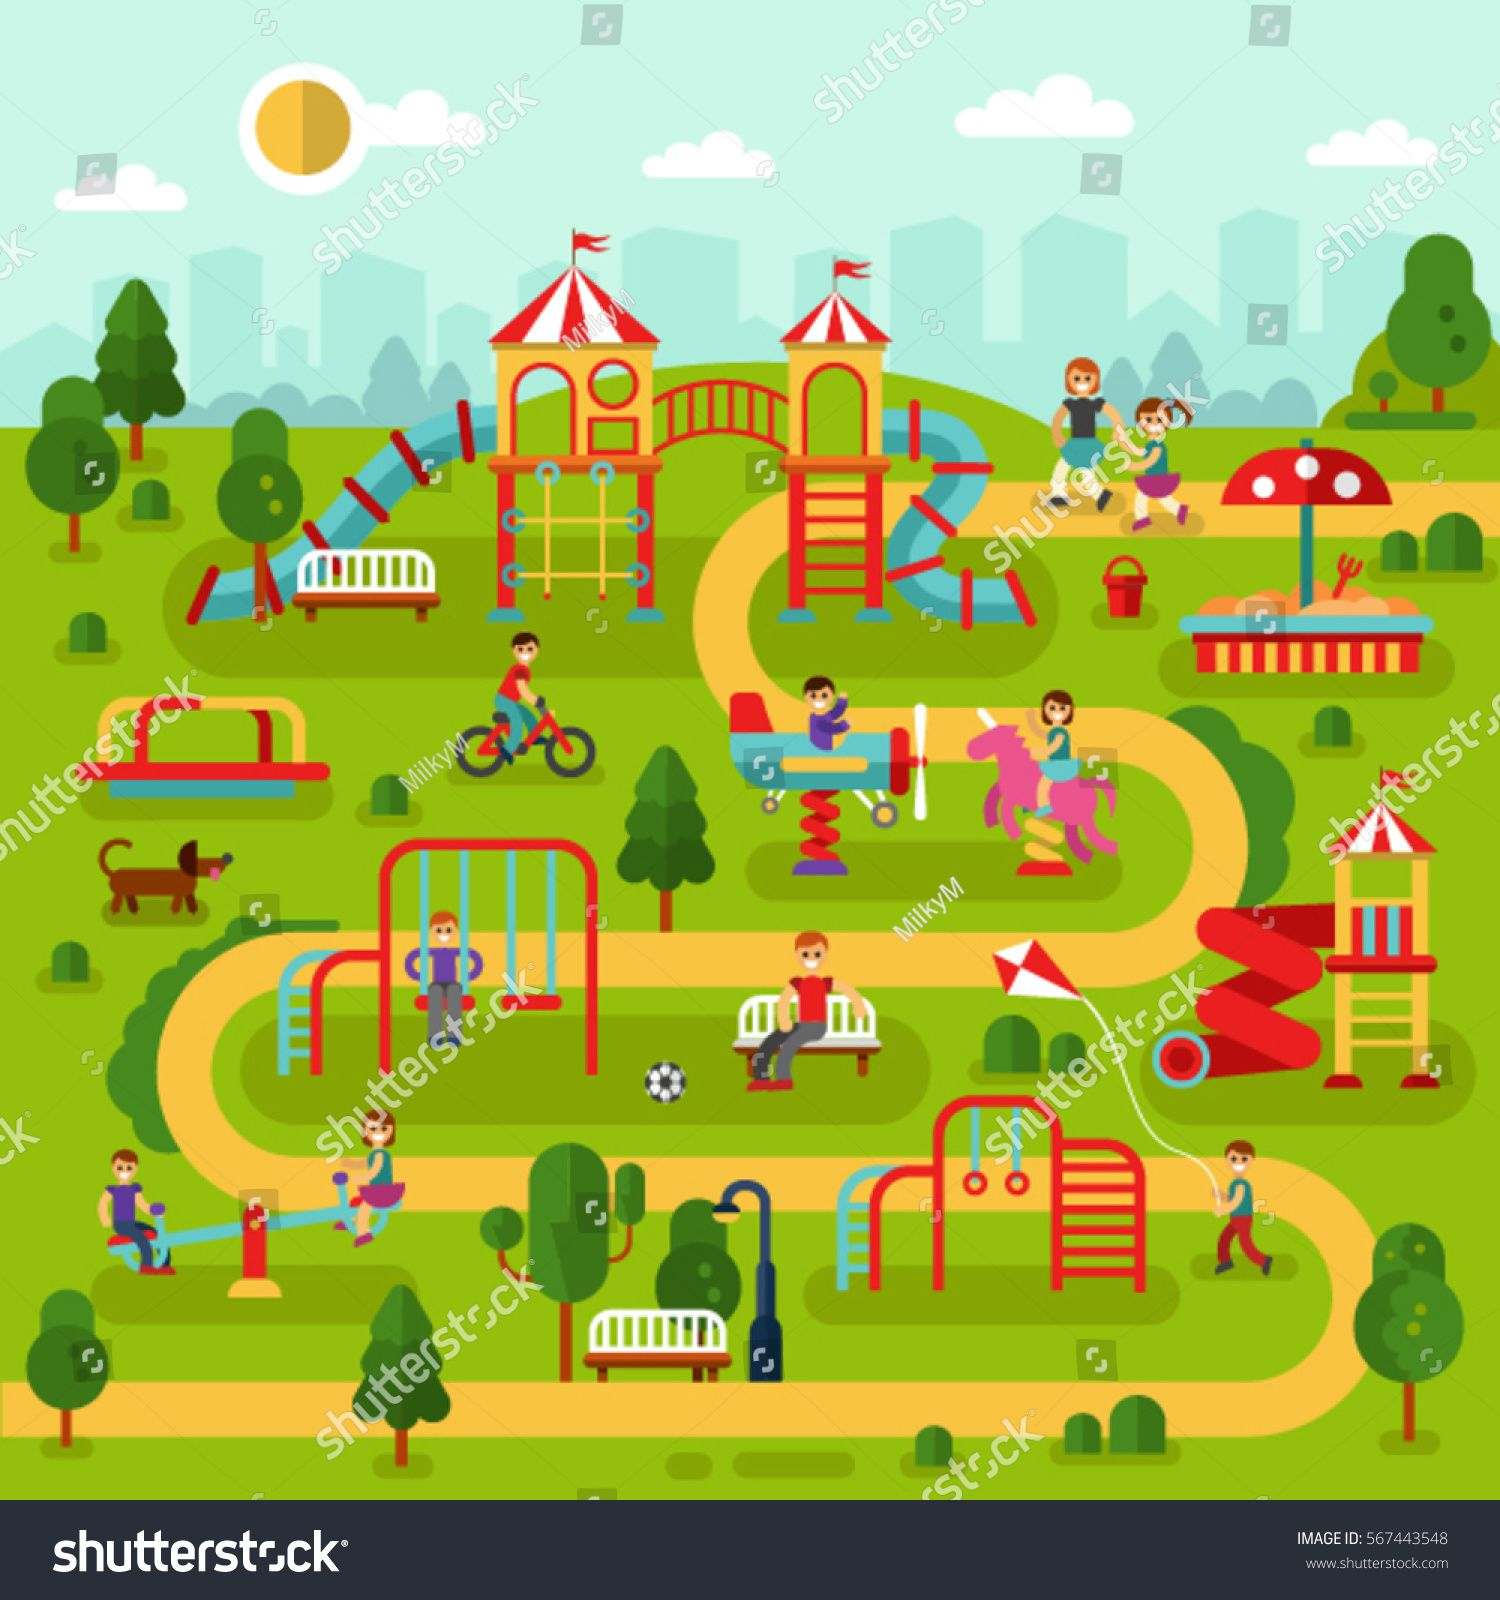 Flat Design Vector Landscape Illustration Of Park Map With Kids Playground And Attractions Infographic Design Illustration Infographic Landscape Illustration